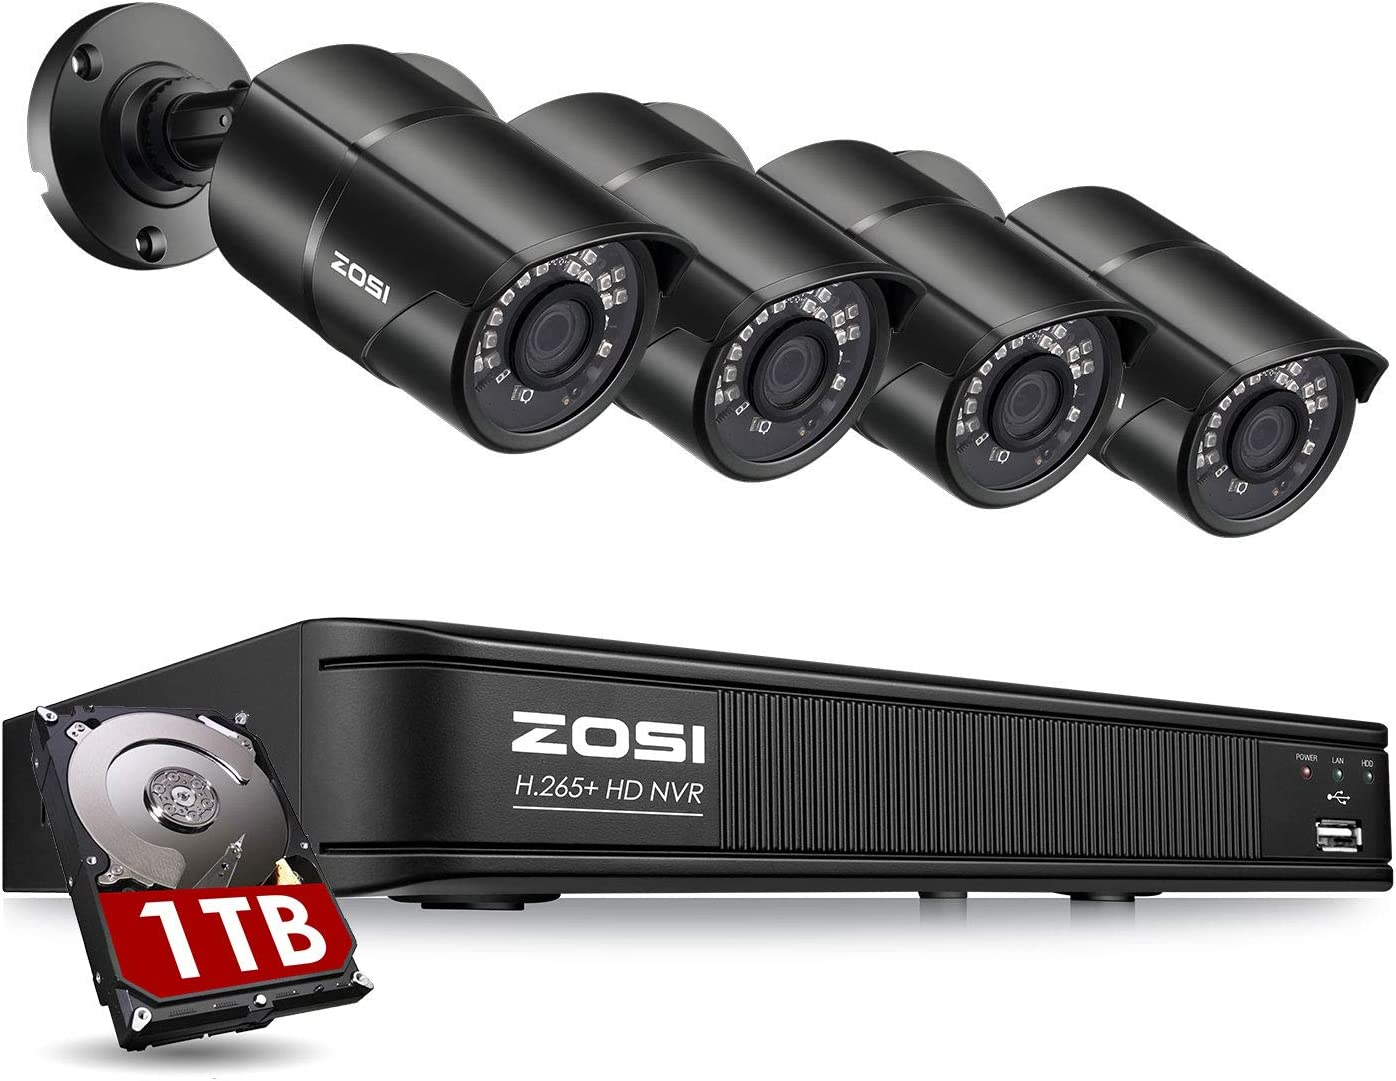 ZOSI H.265+ 5MP PoE Home Security Camera System, Ultra HD PoE NVR 8 Channel with 1TB HDD for 24/7 Recording, 4X 5MP Weatherproof IP PoE Cameras Outdoor Indoor,120ft Night Vision, Remote Access